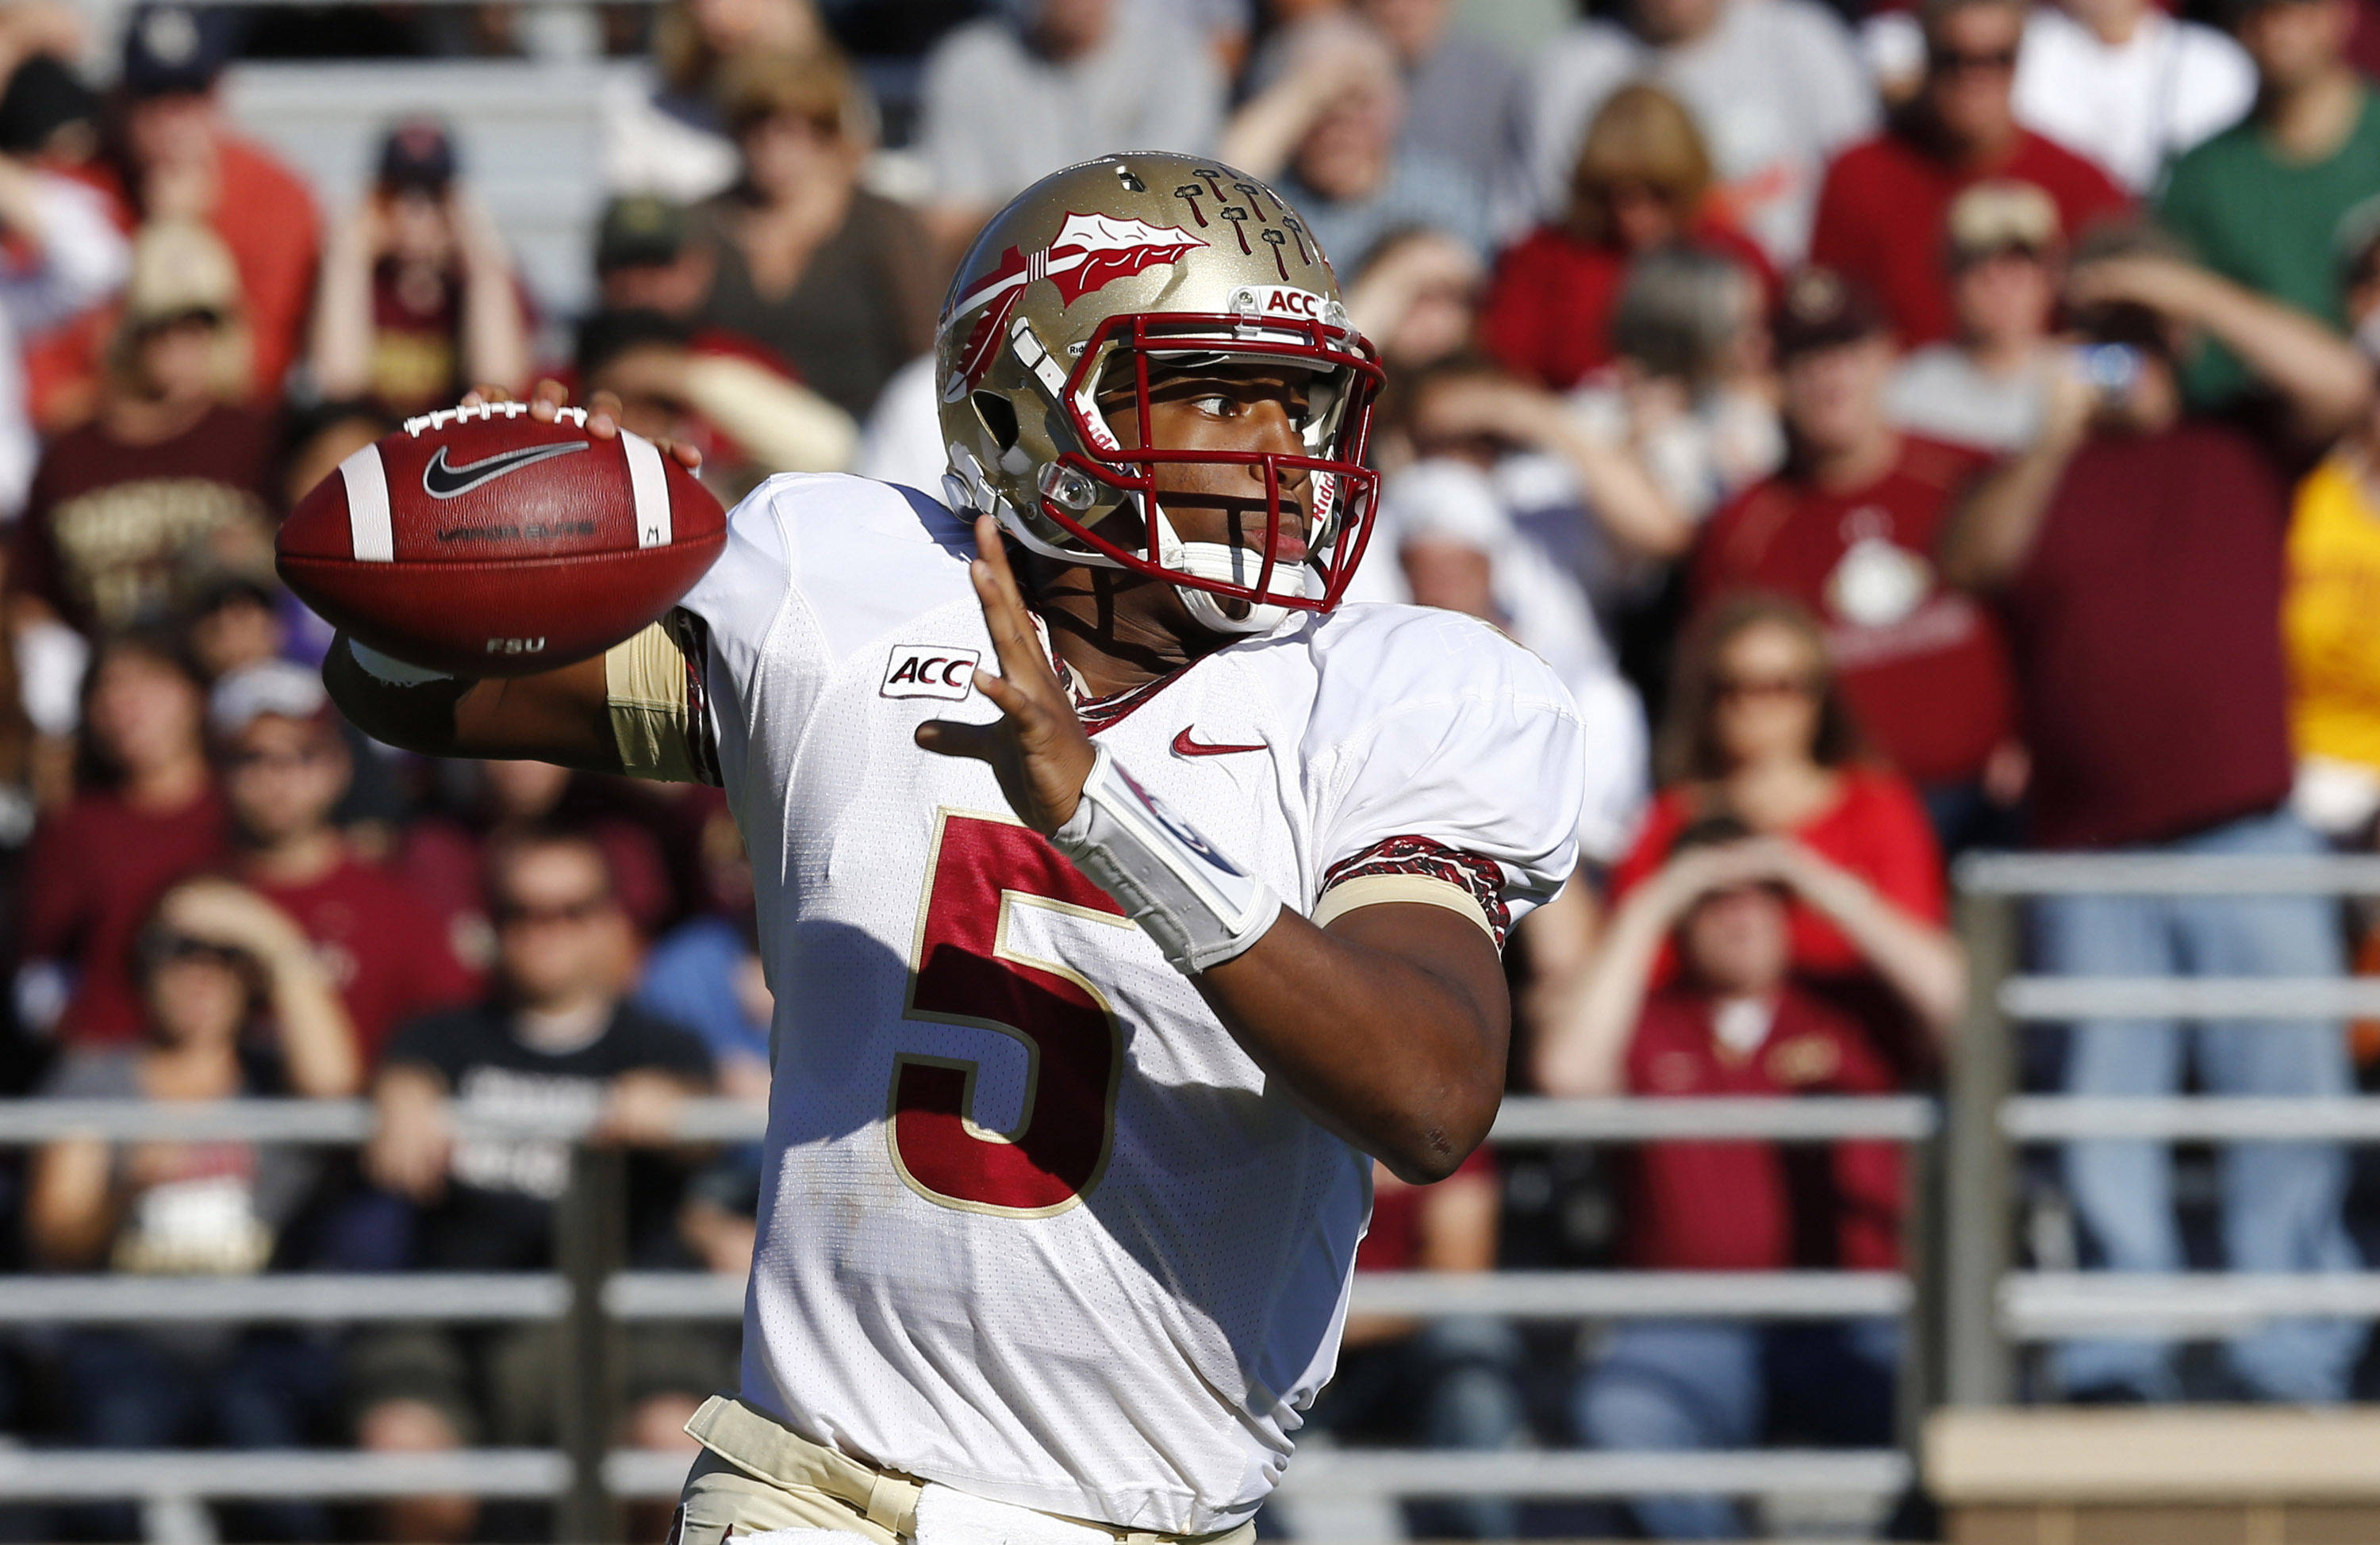 Jameis Winston (5) throws the ball. Mandatory Credit: Mark L. Baer-USA TODAY Sports